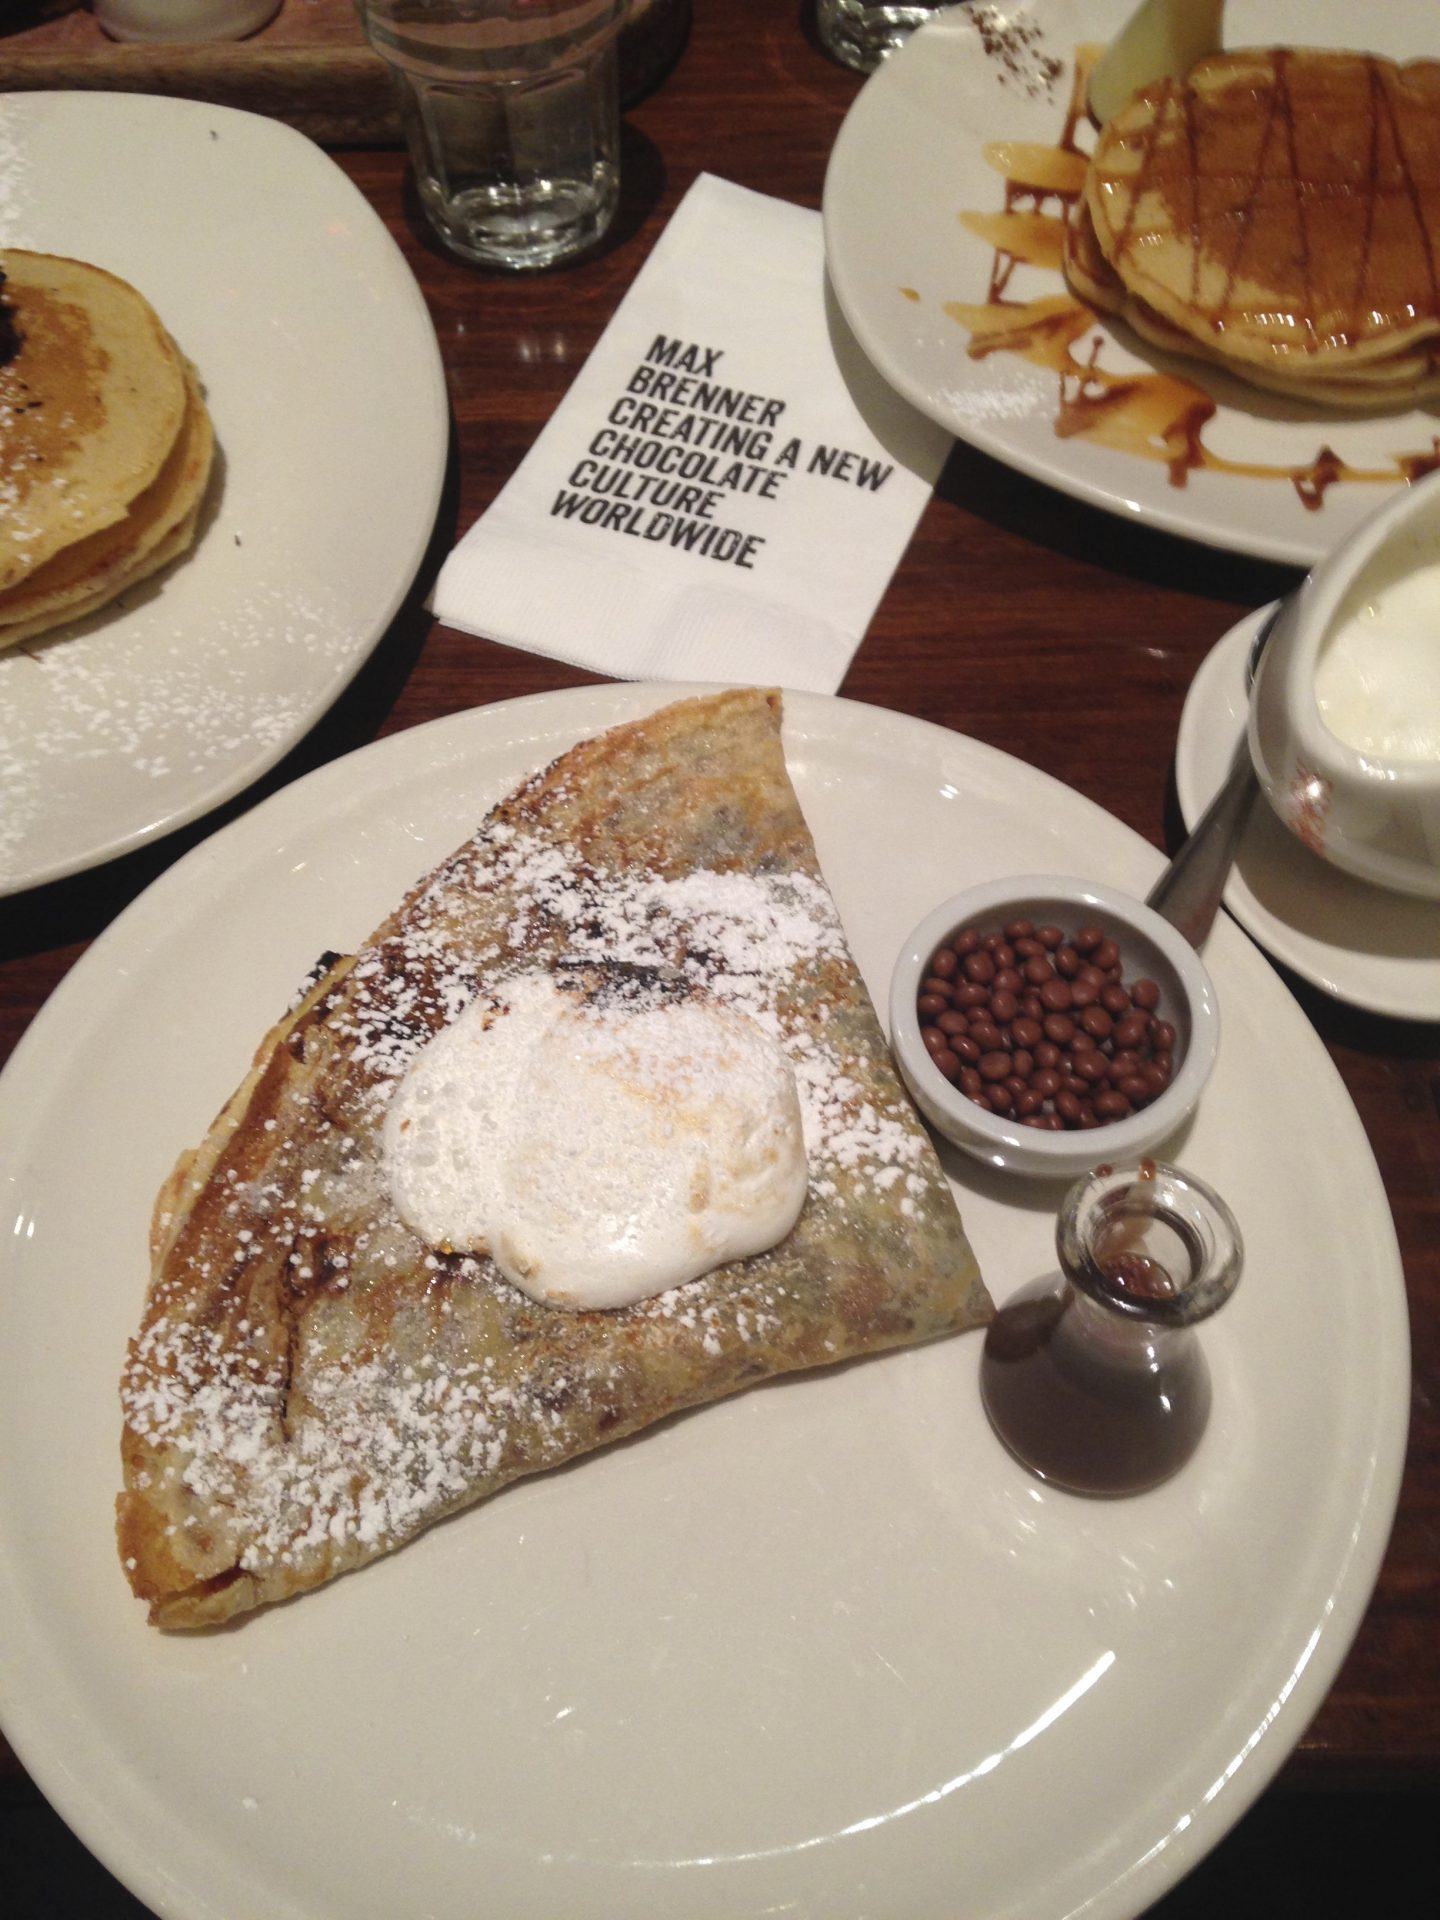 Breakfast at Max Brenner